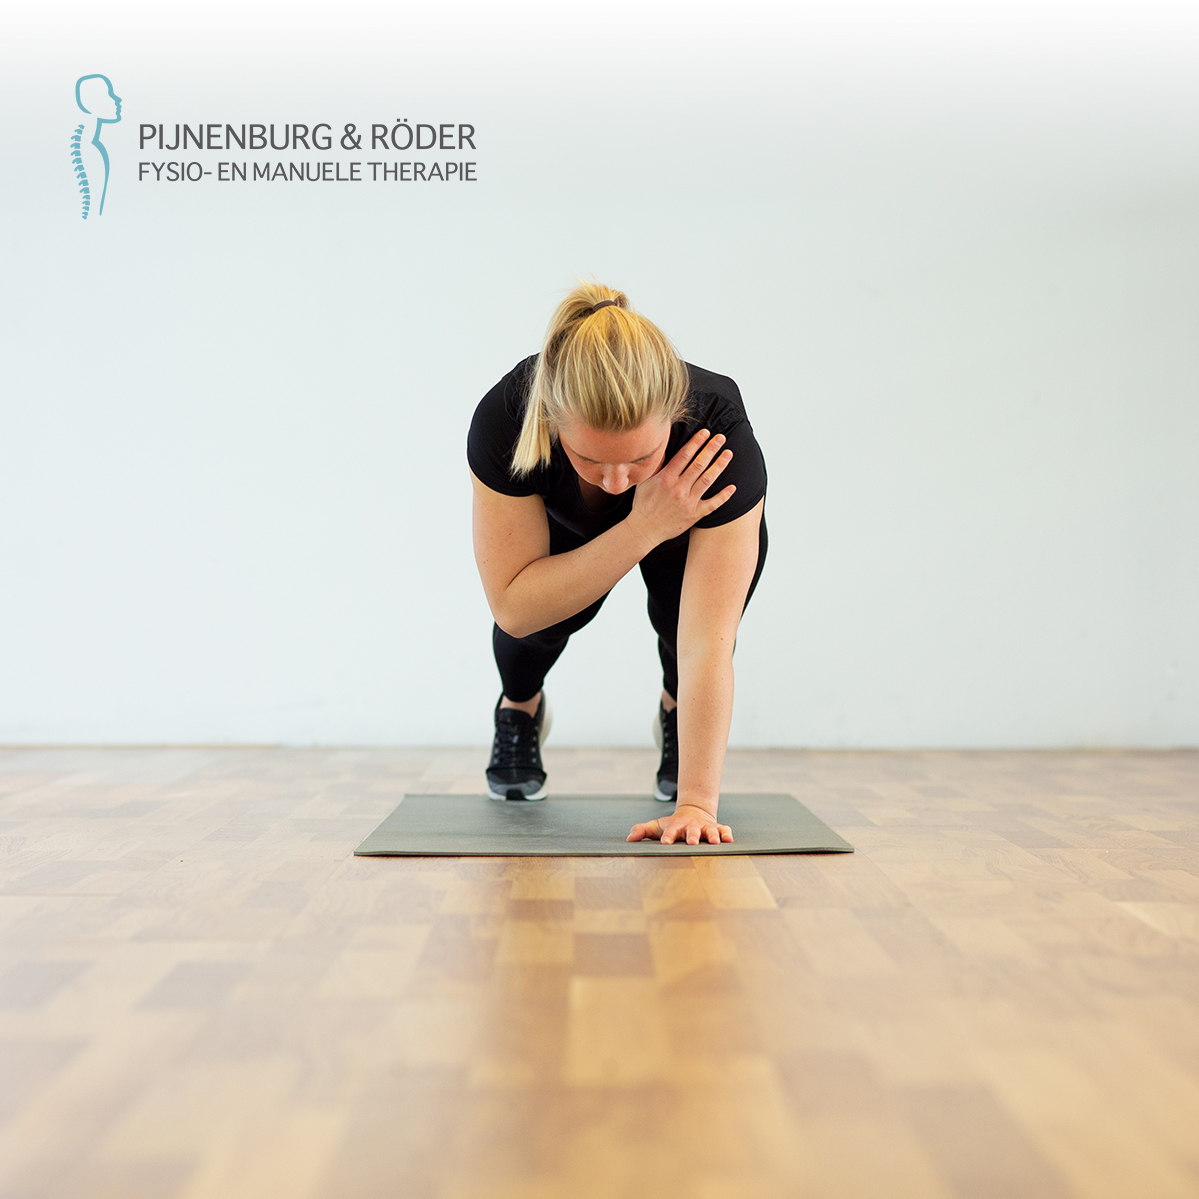 lage rug stabiliteit plank with shoulder tap